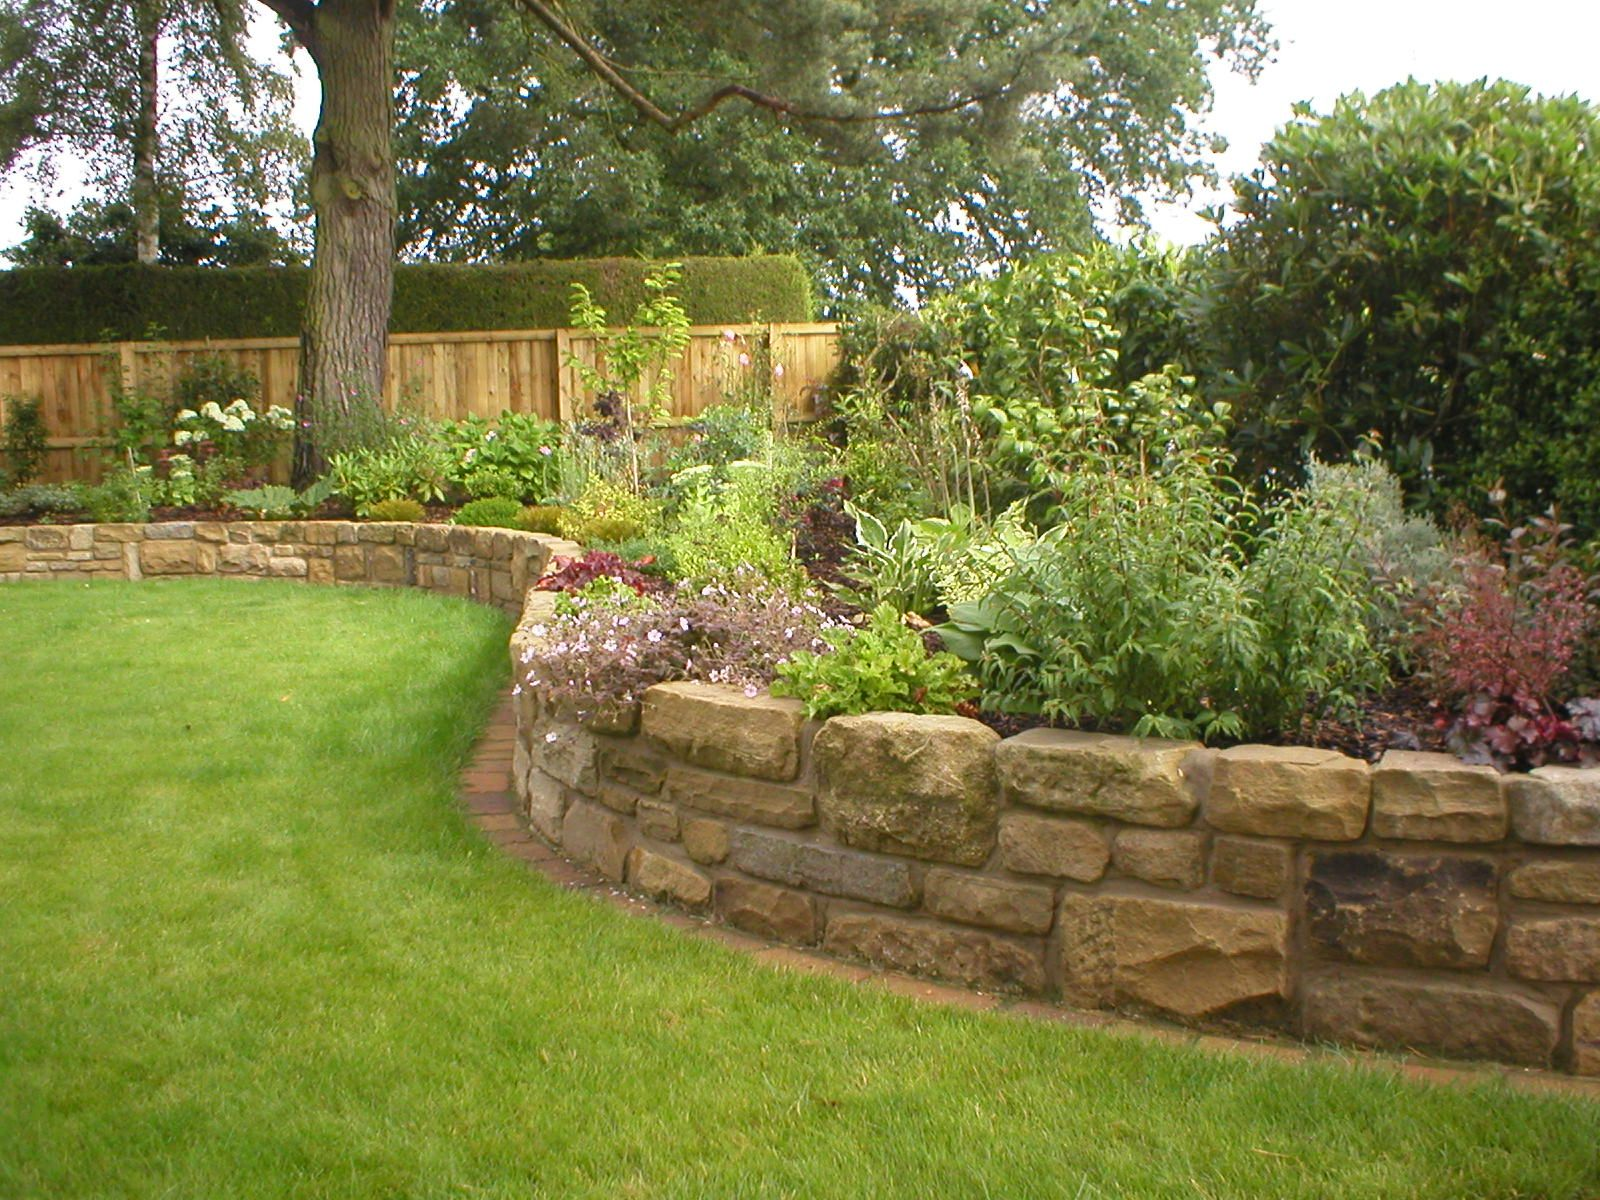 garden design knaresborough design knaresborough to decor garden design knaresborough